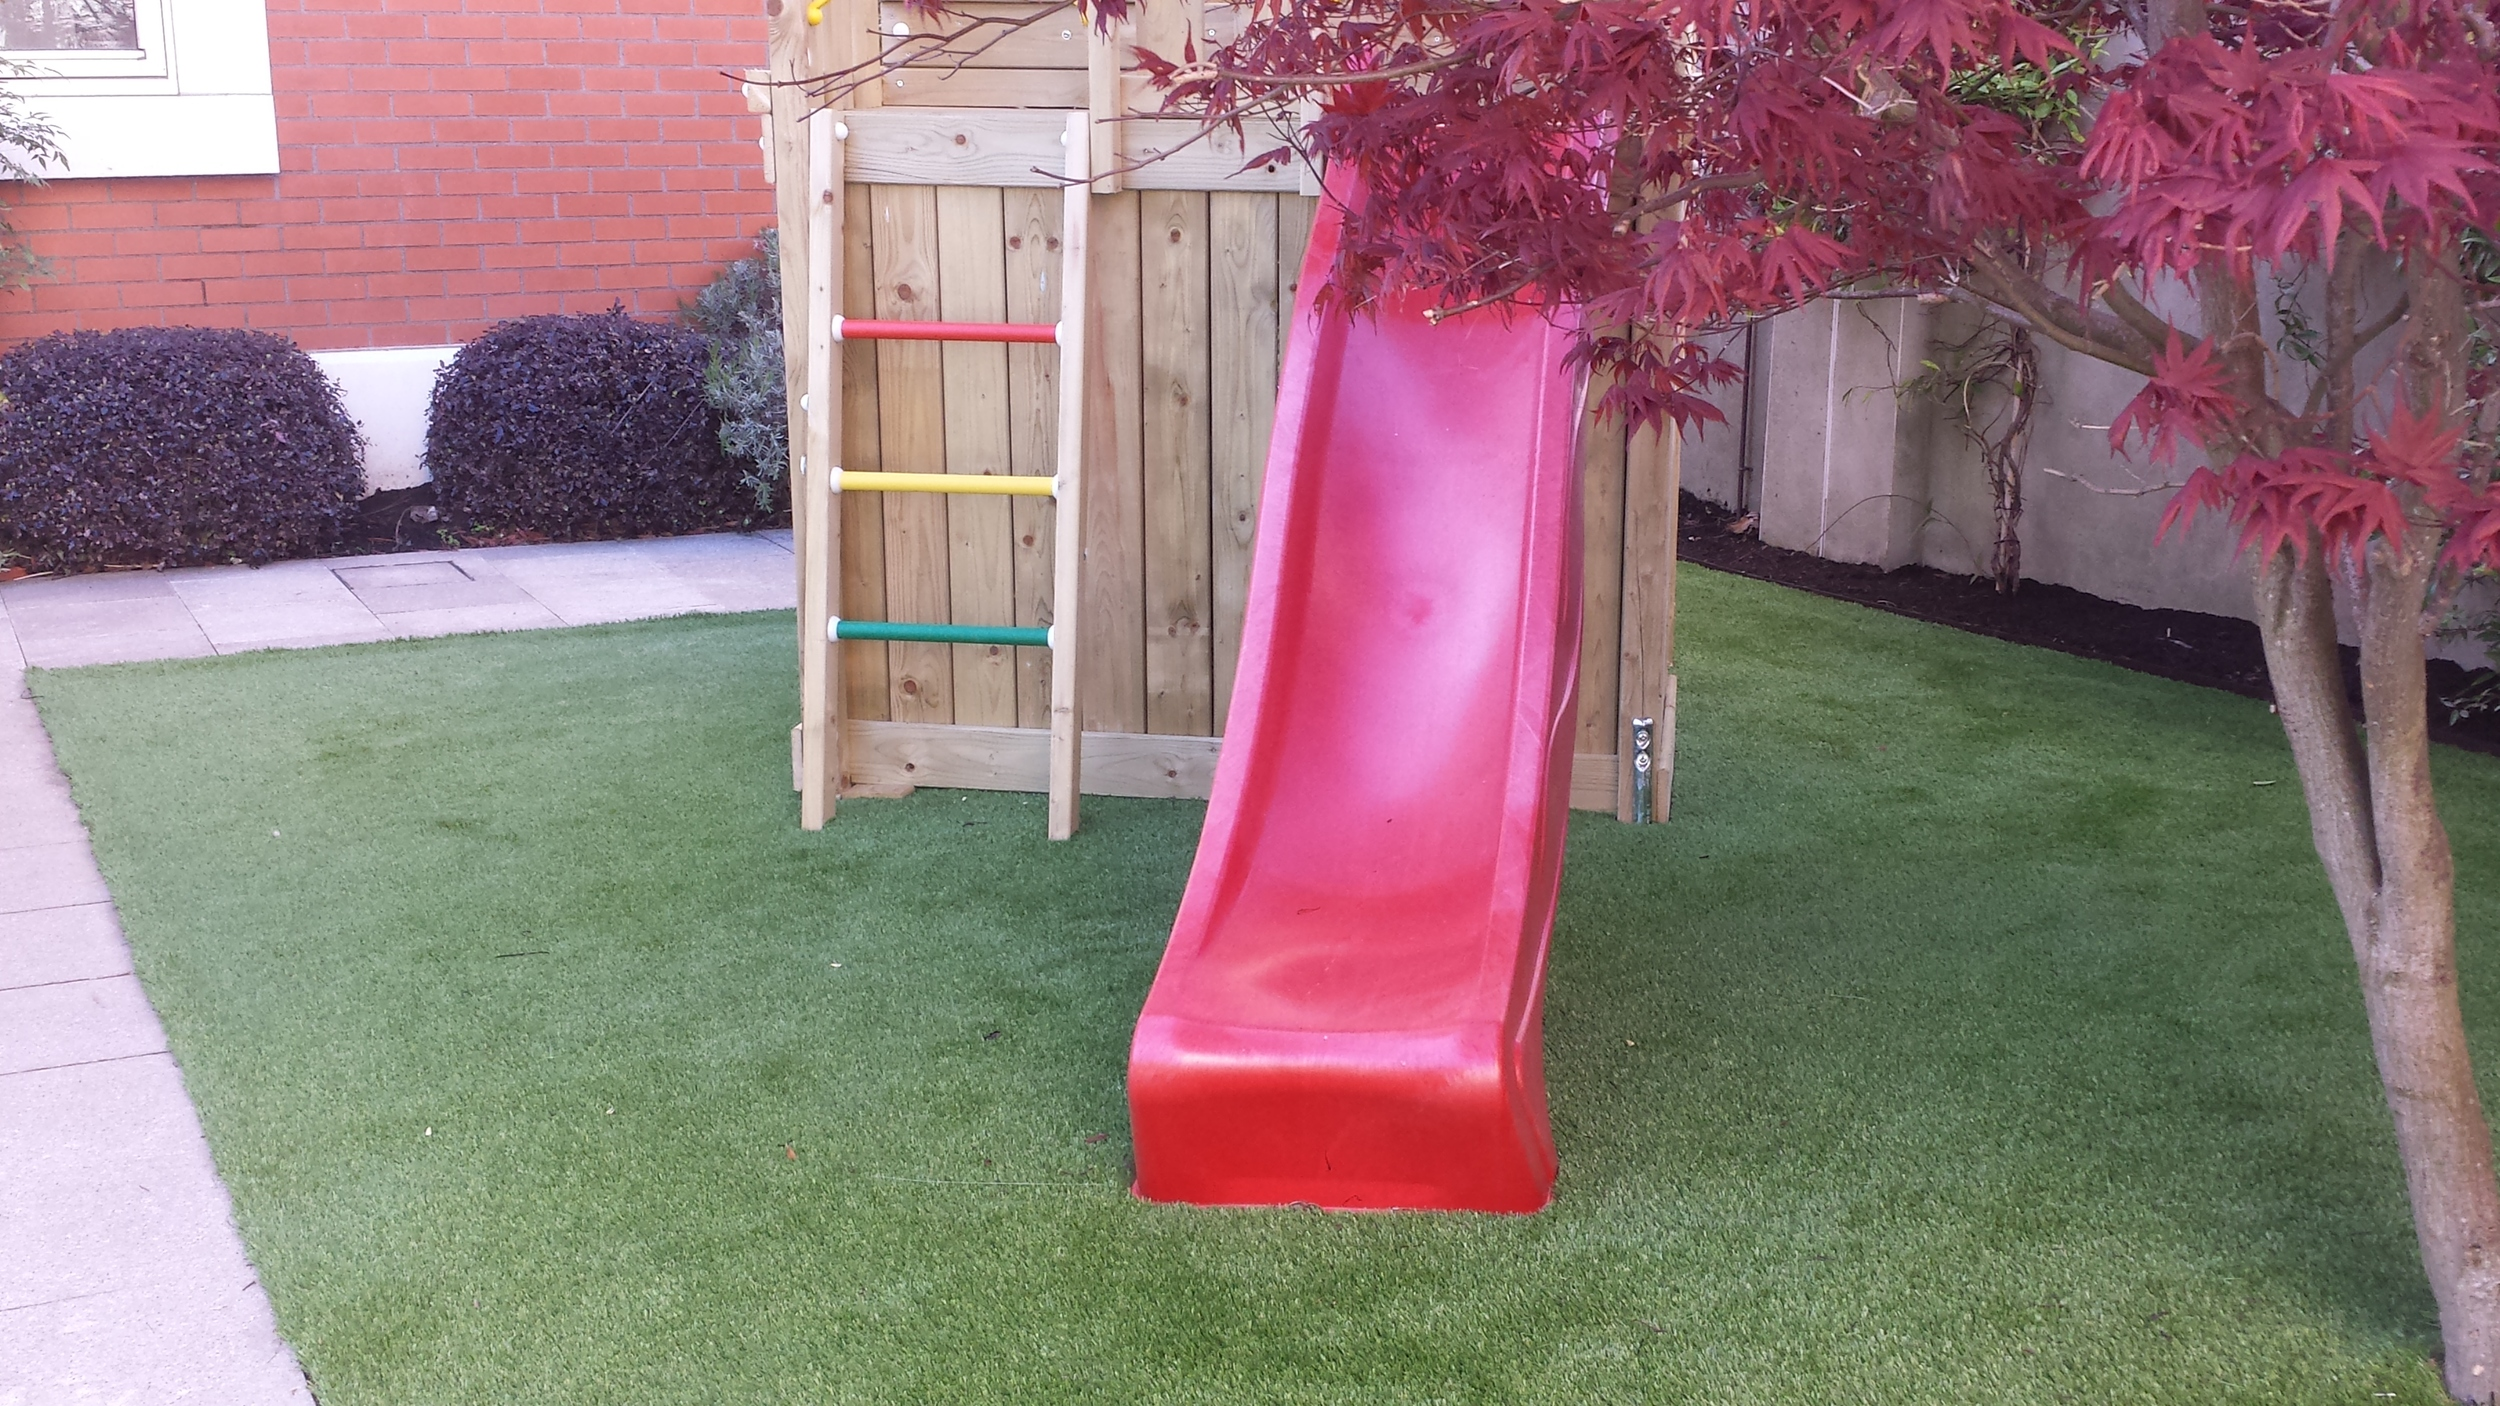 Slide and Lawn